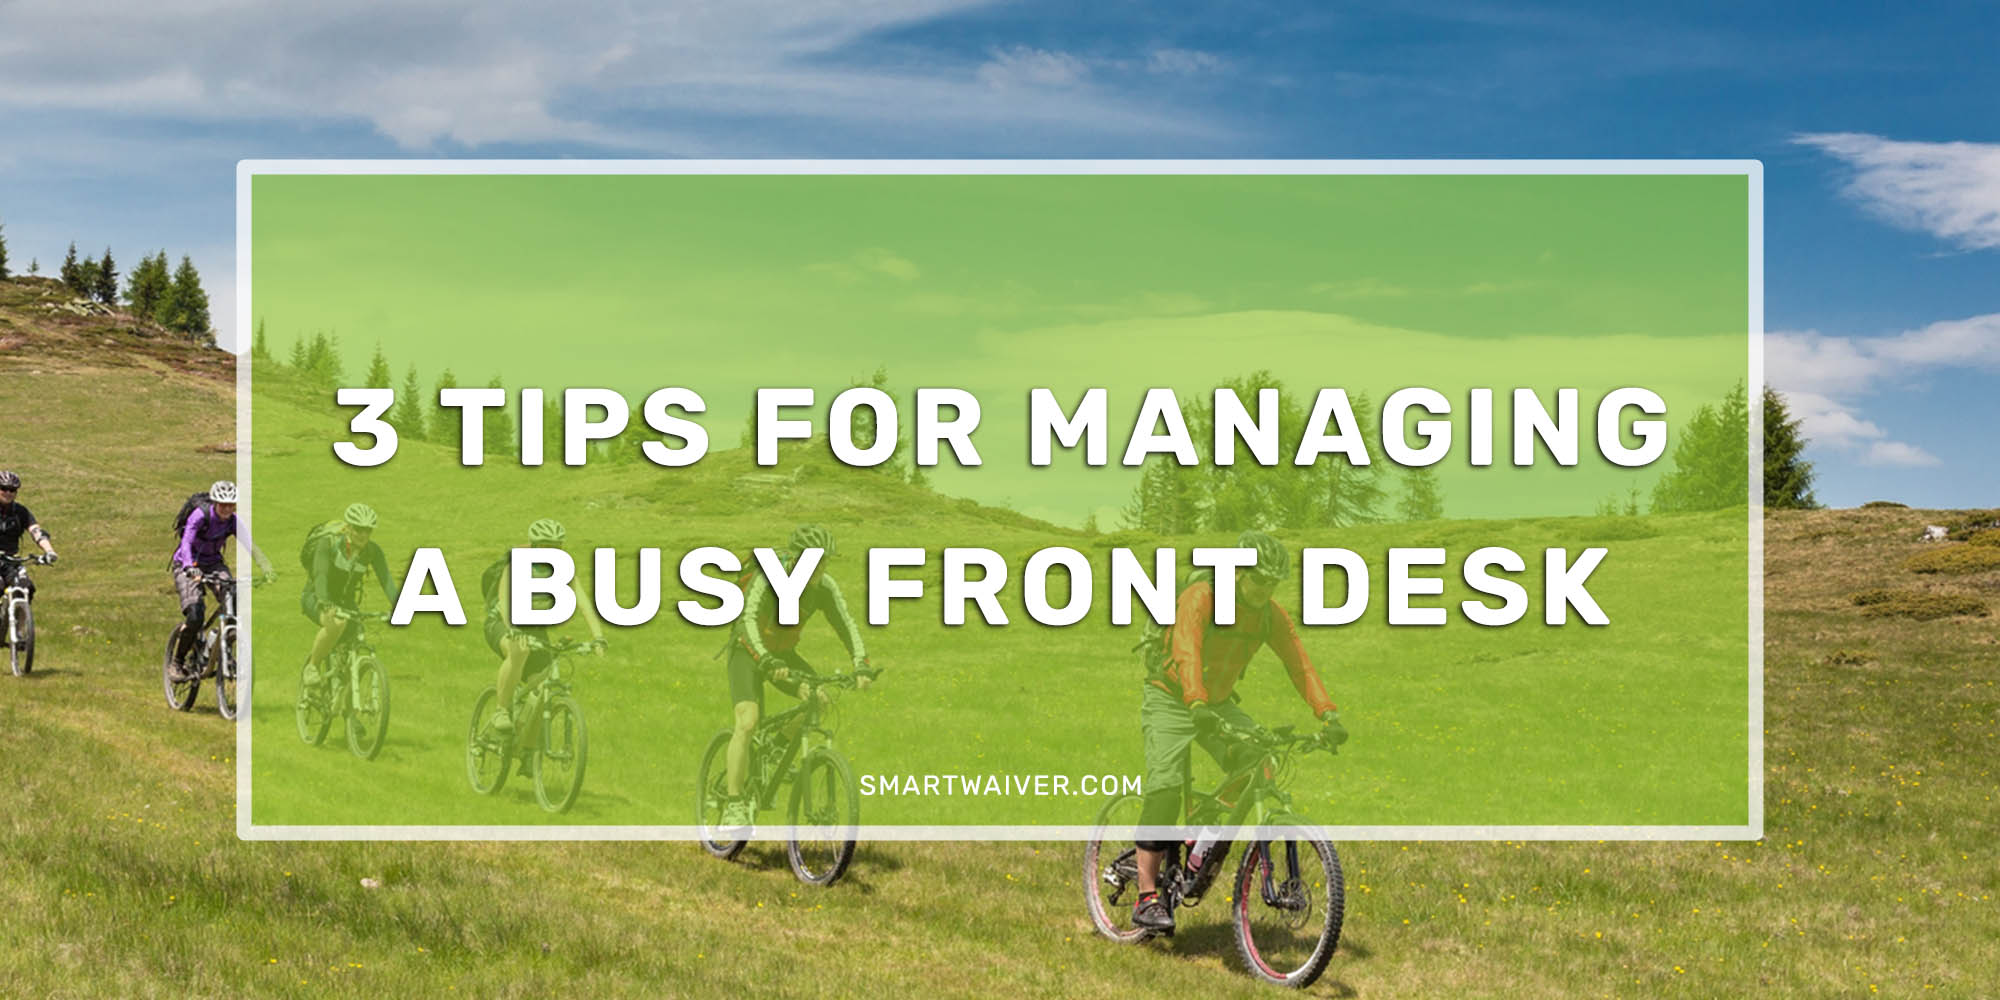 3 Tips for Managing a Busy Front Desk